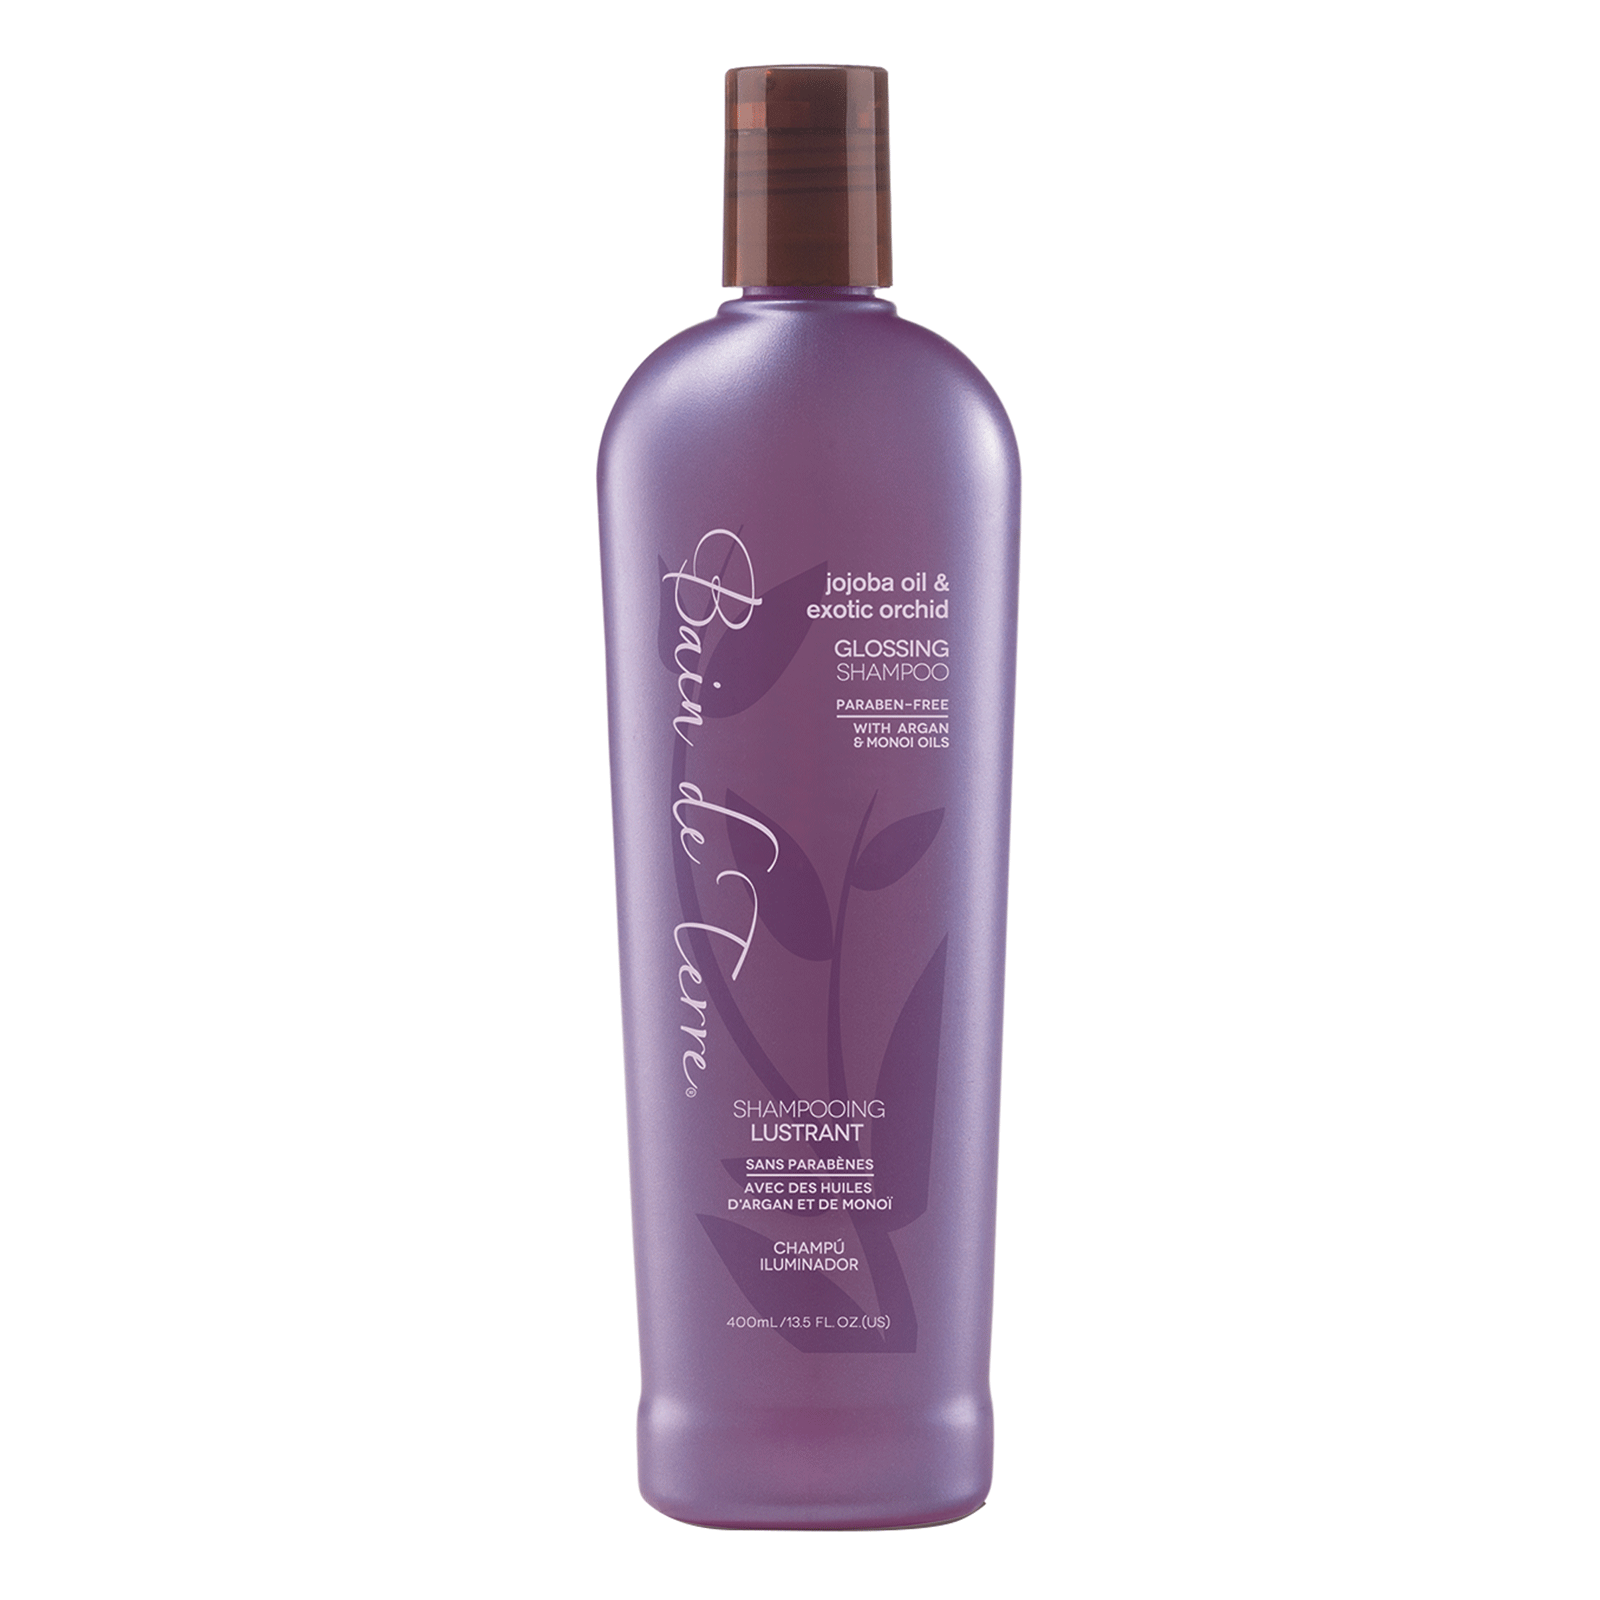 Jojoba Oil and Exotic Orchid Glossing Shampoo